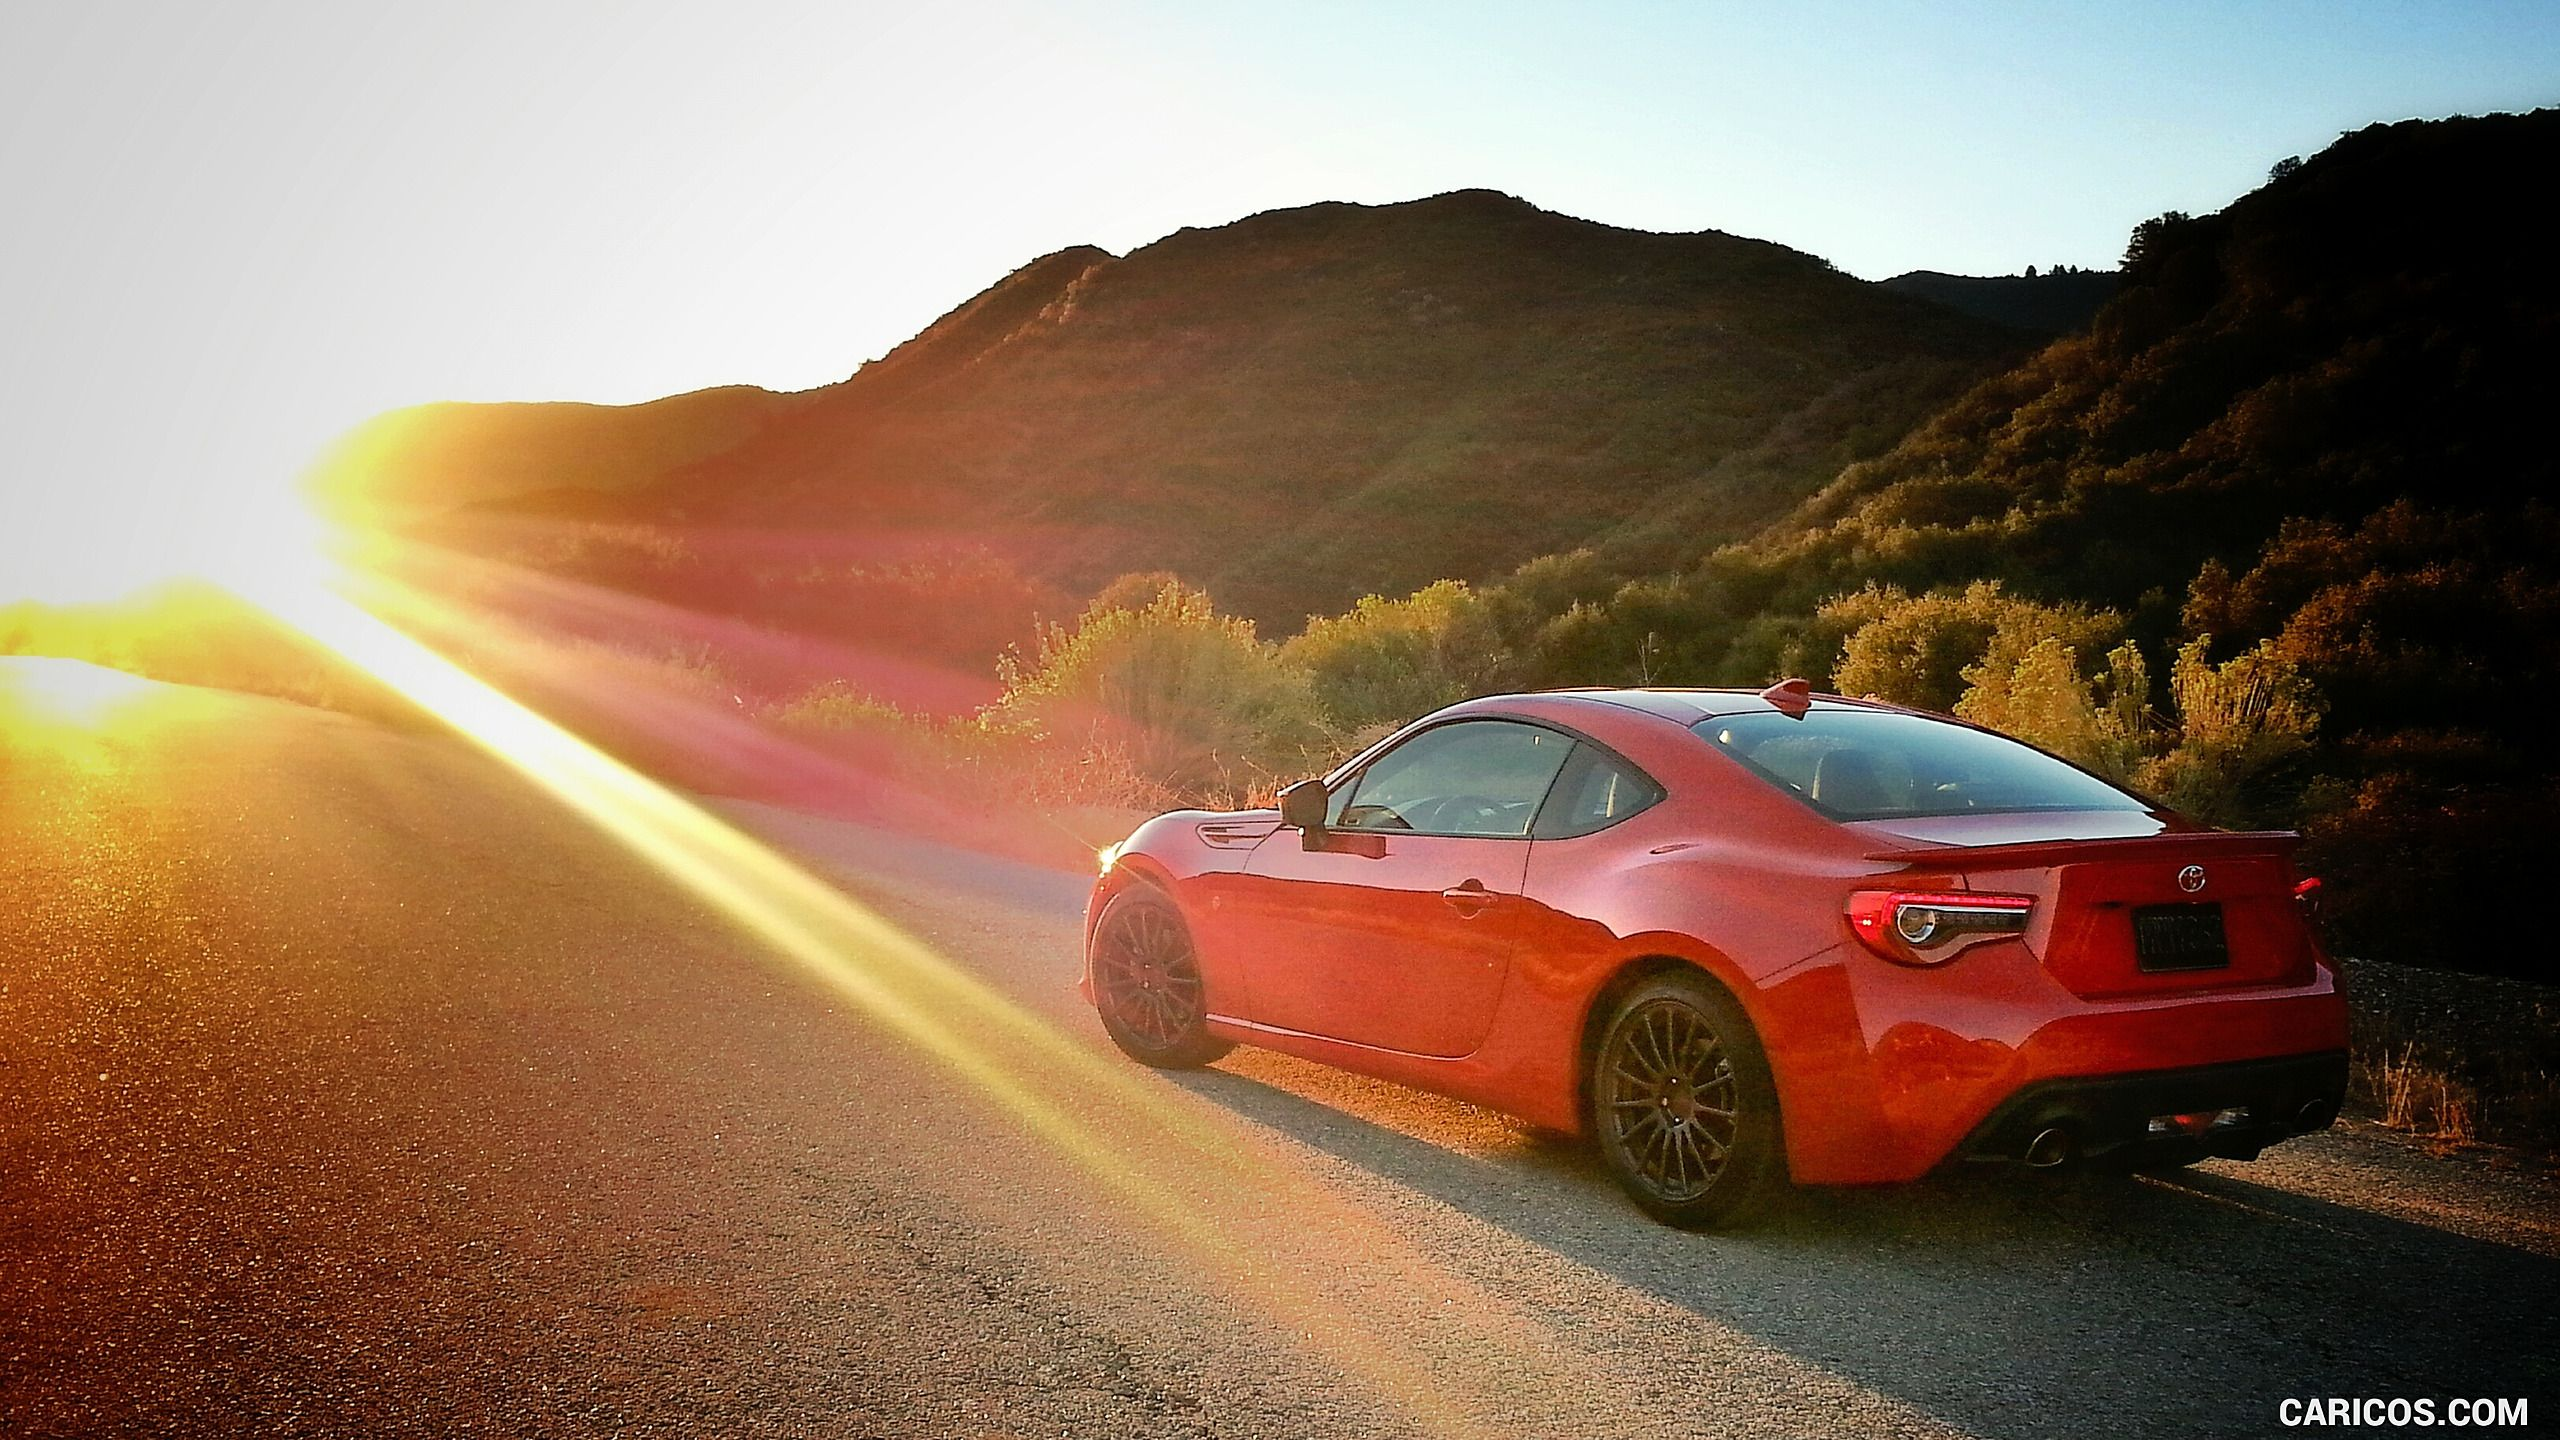 2017 Toyota 86 Red with TRD Accessories Rear Three Quarter HD